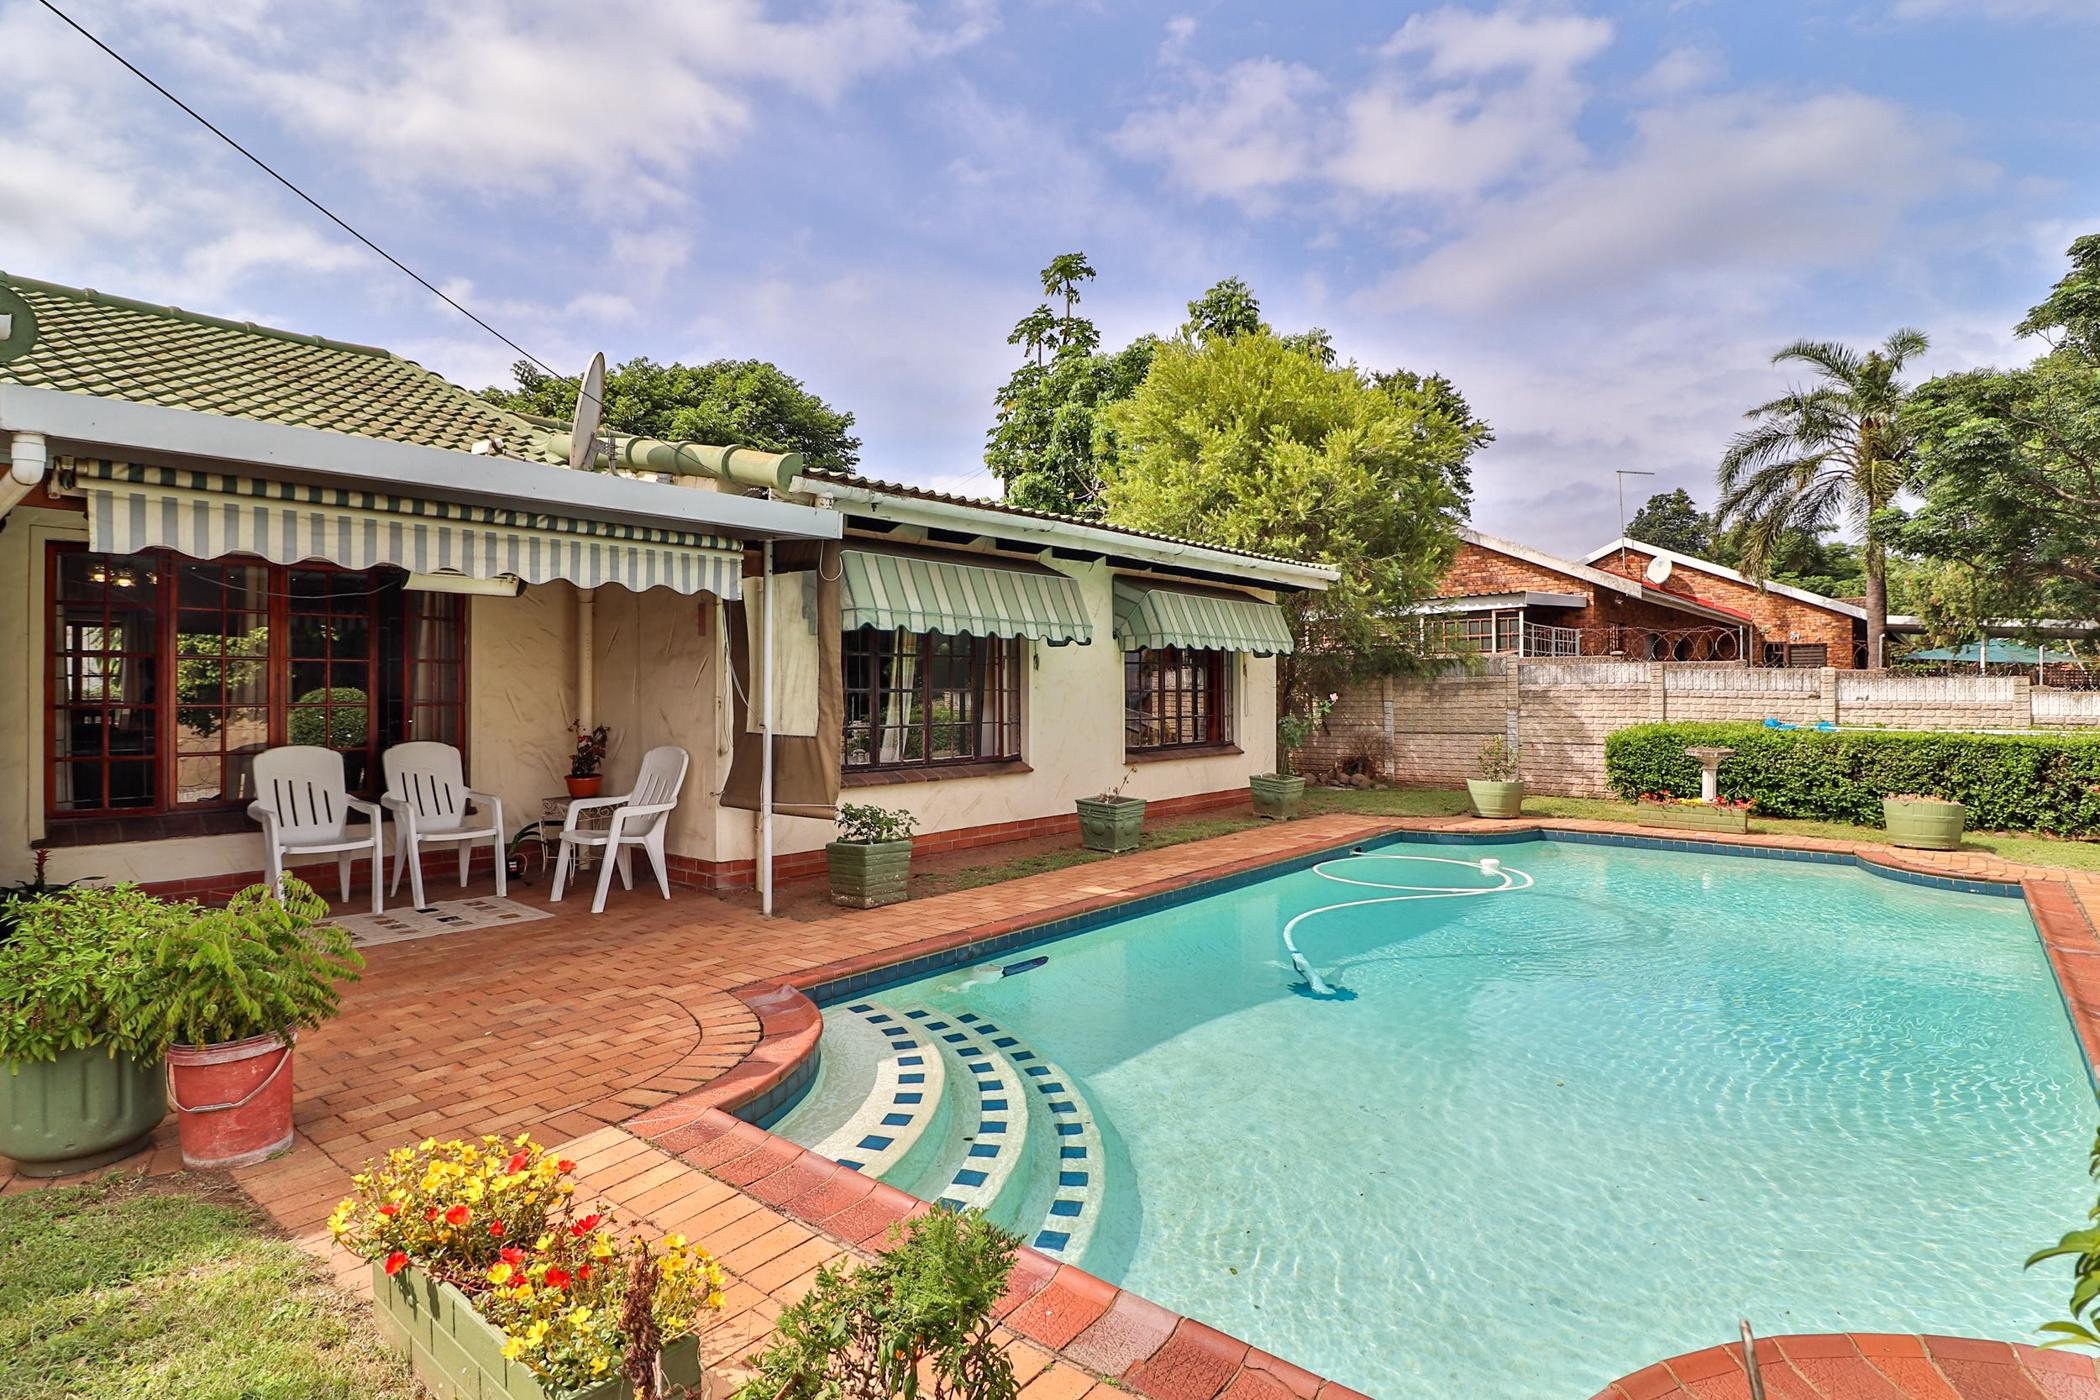 3 Bedroom House For Sale   Durban North   1ND1484345   Pam